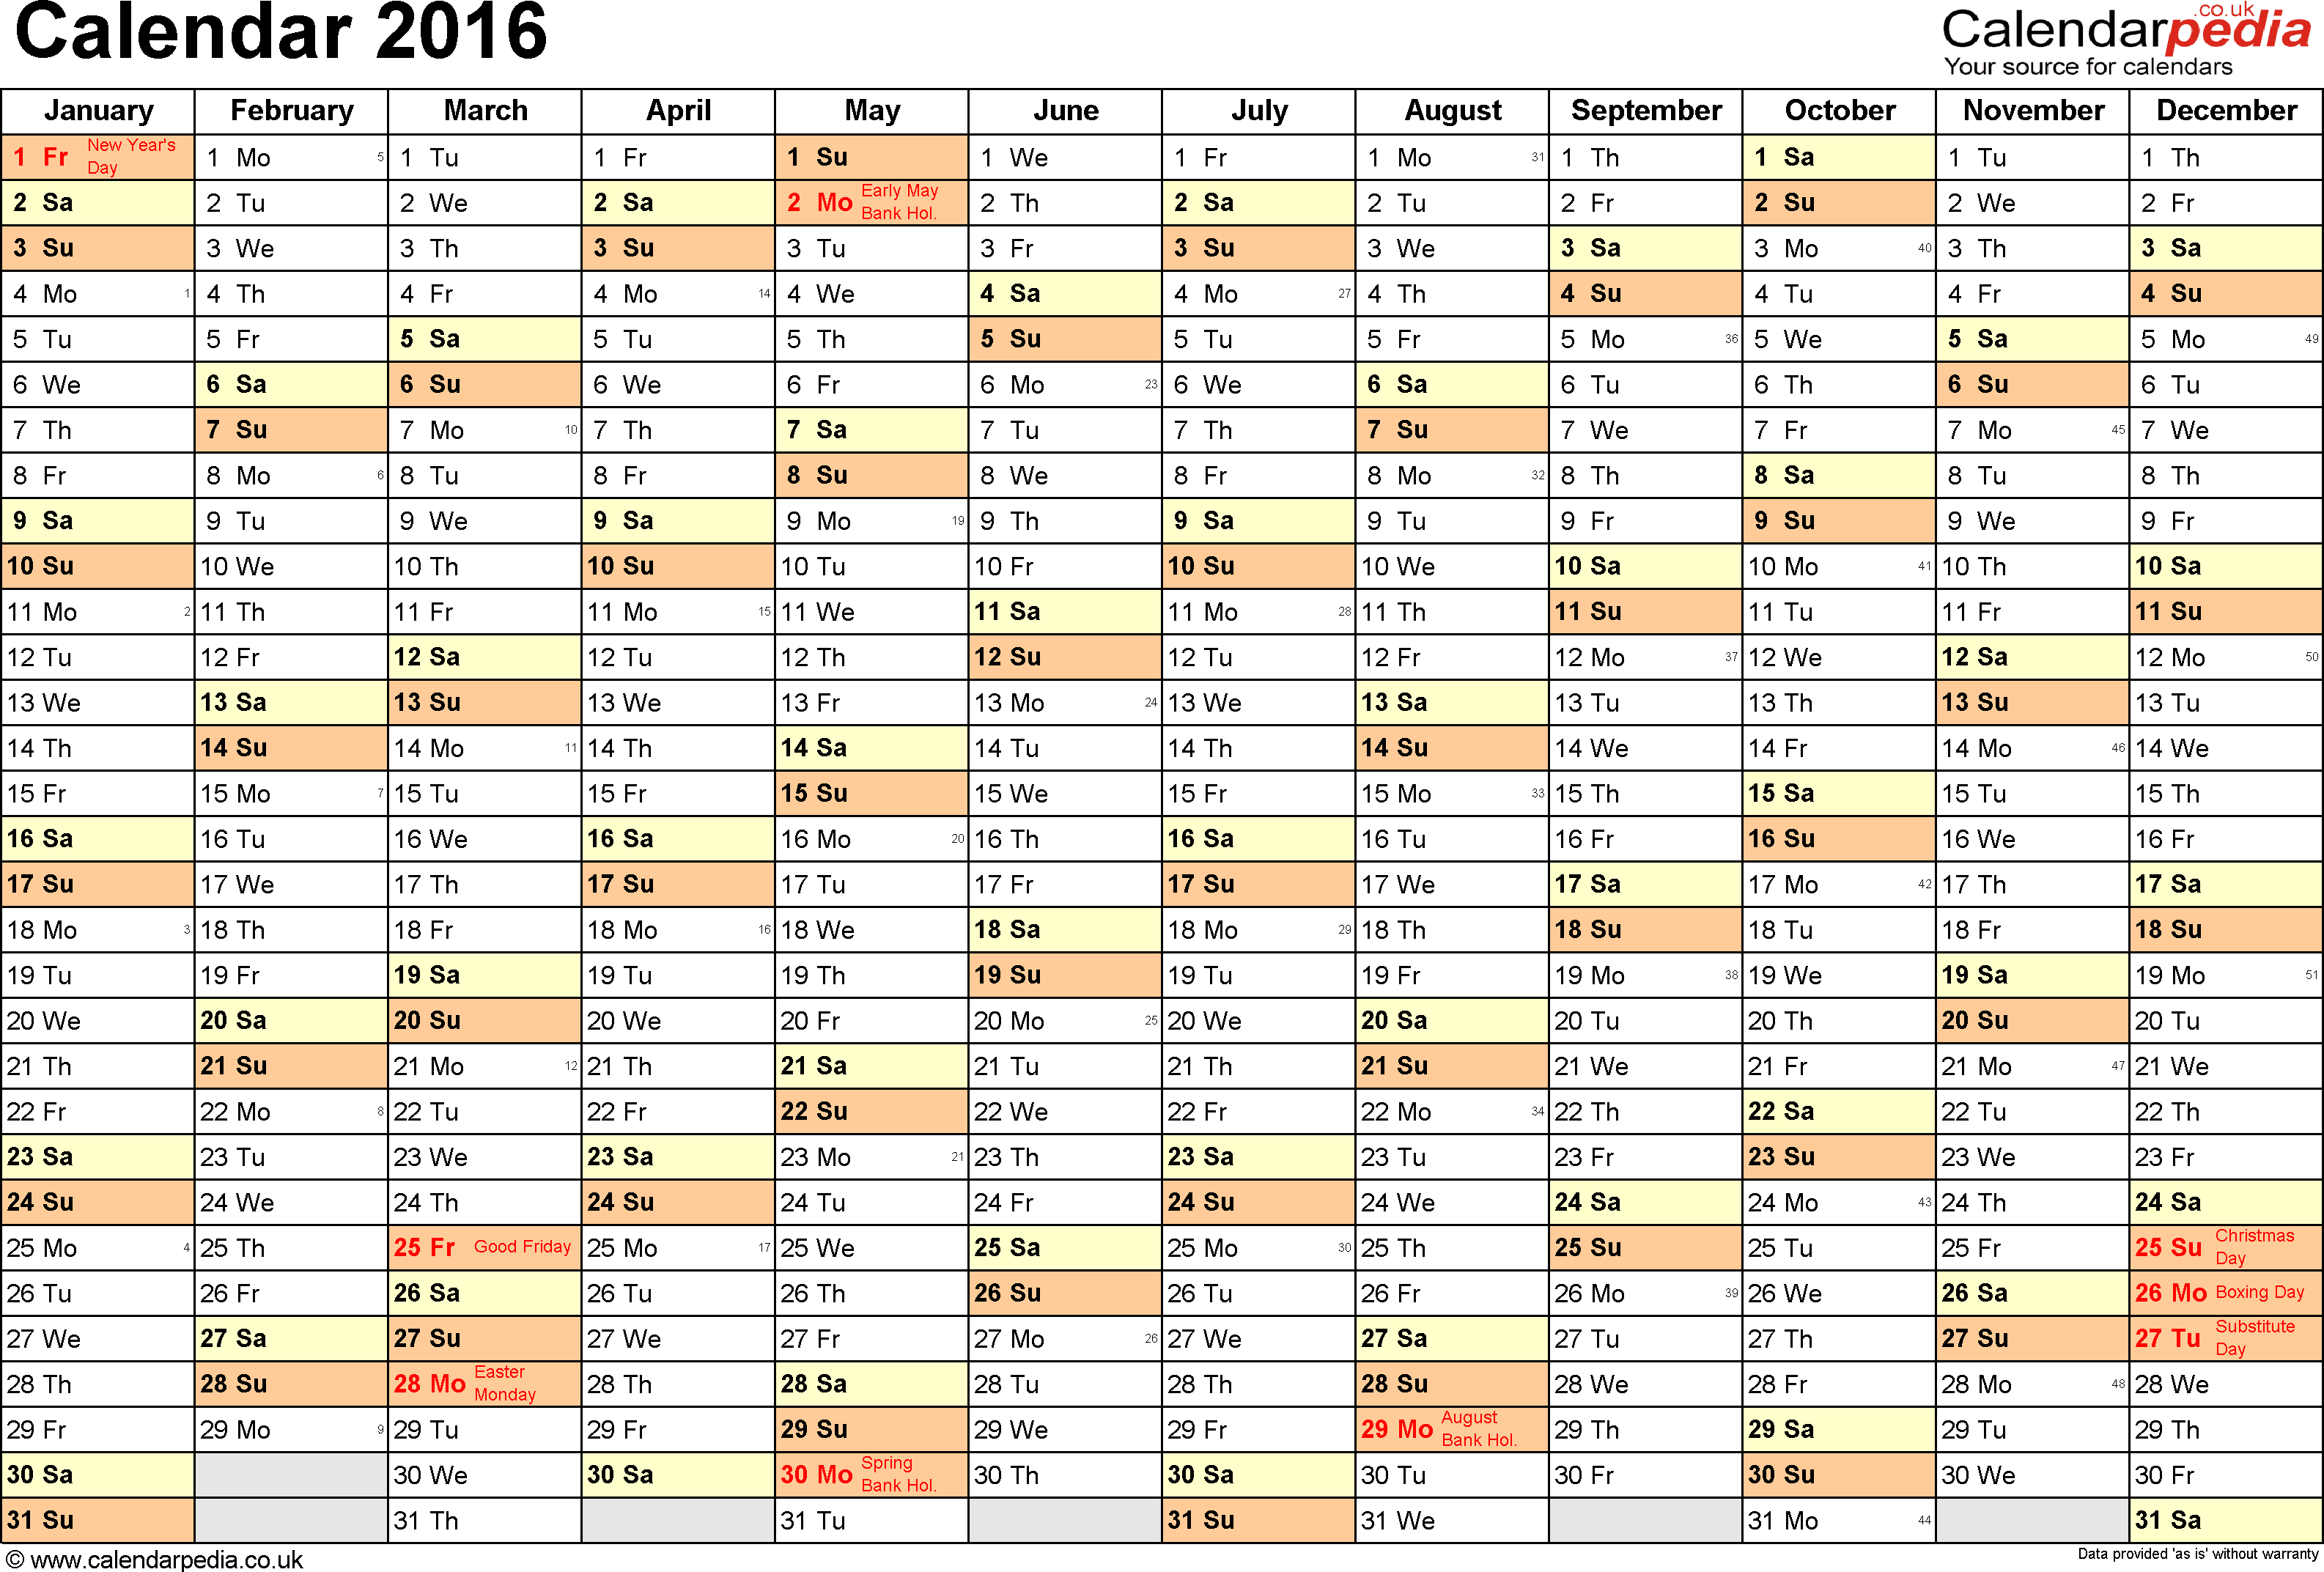 Download calendar 2016 (UK edition) as PNG file